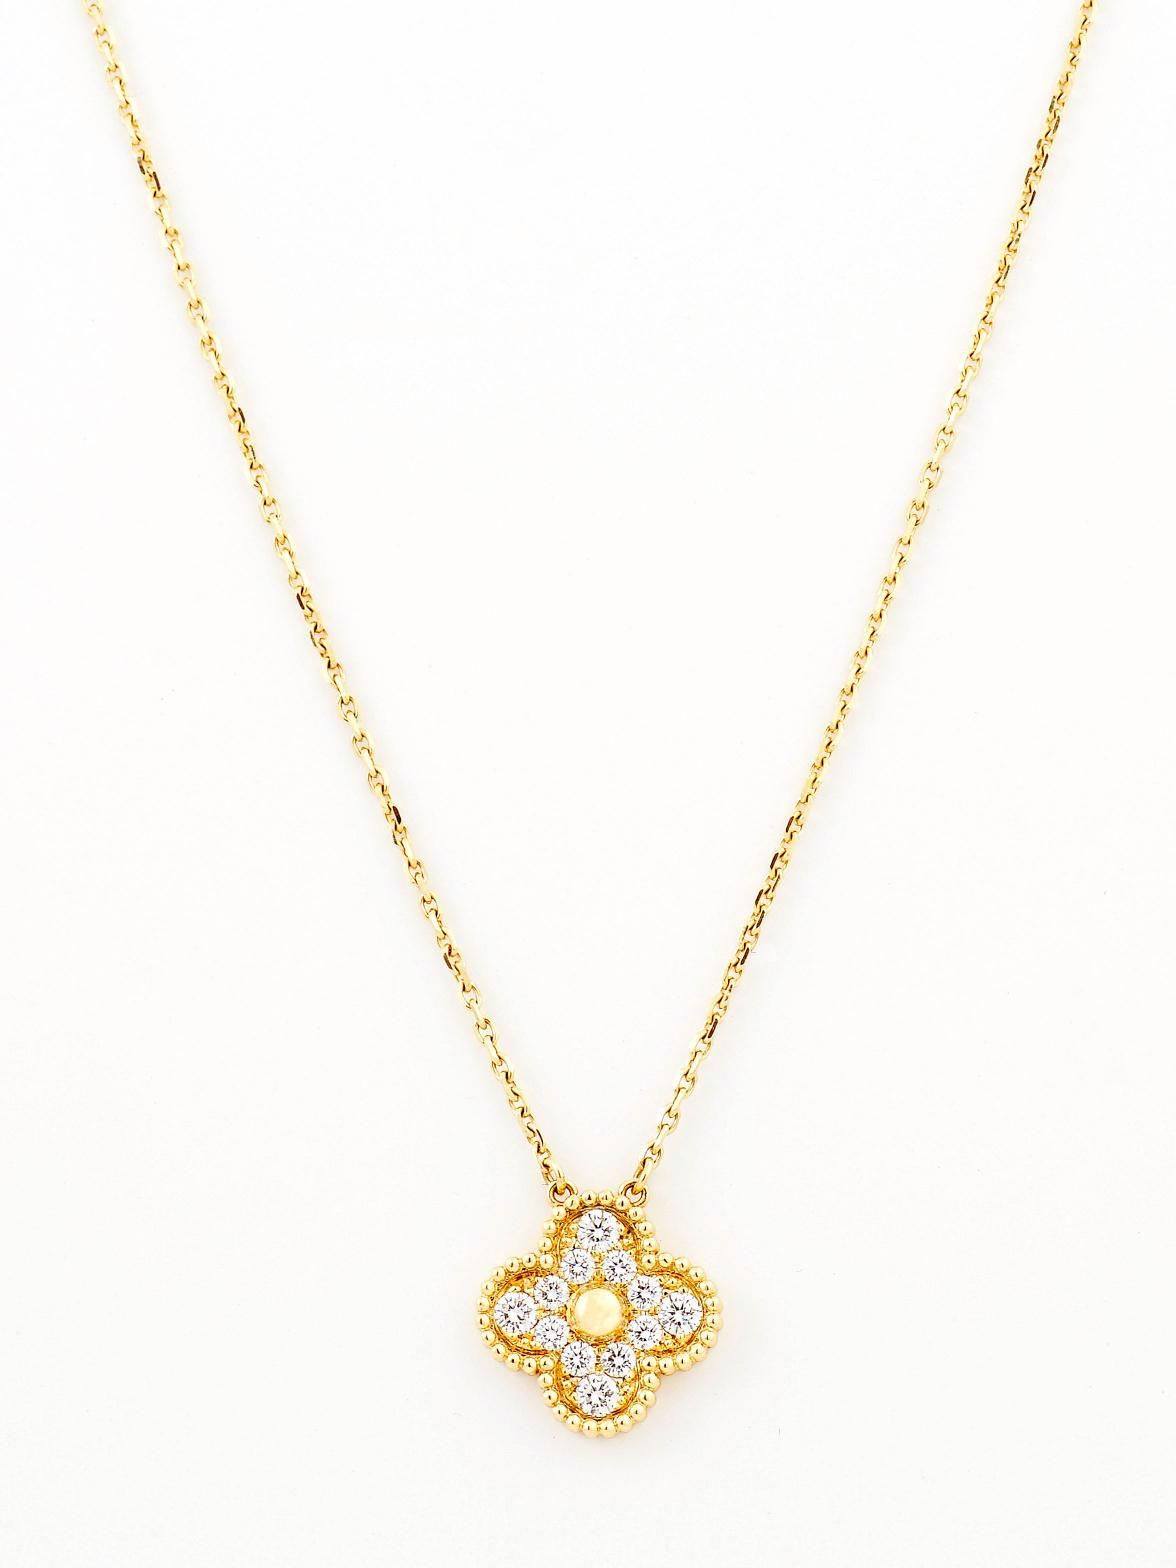 Van cleef arpels 18k diamond vintage alhambra pendant 18k yellow van cleef arpels 18k diamond vintage alhambra pendant 18k yellow gold chain with one aloadofball Choice Image